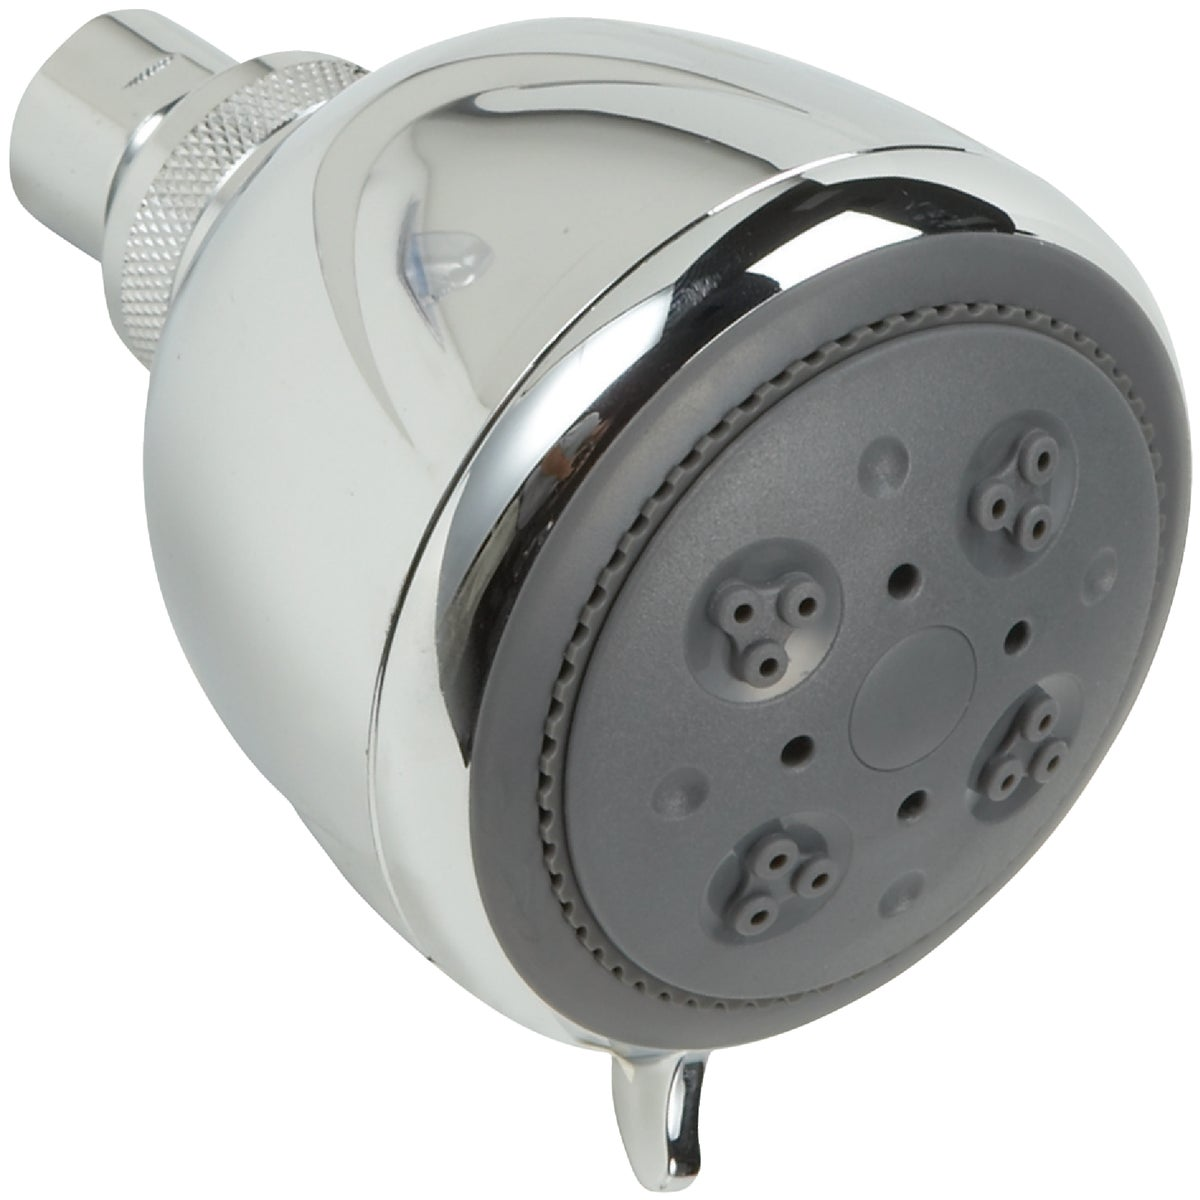 CHR 3-SET SHOWERHEAD - 401015 by Do it Best